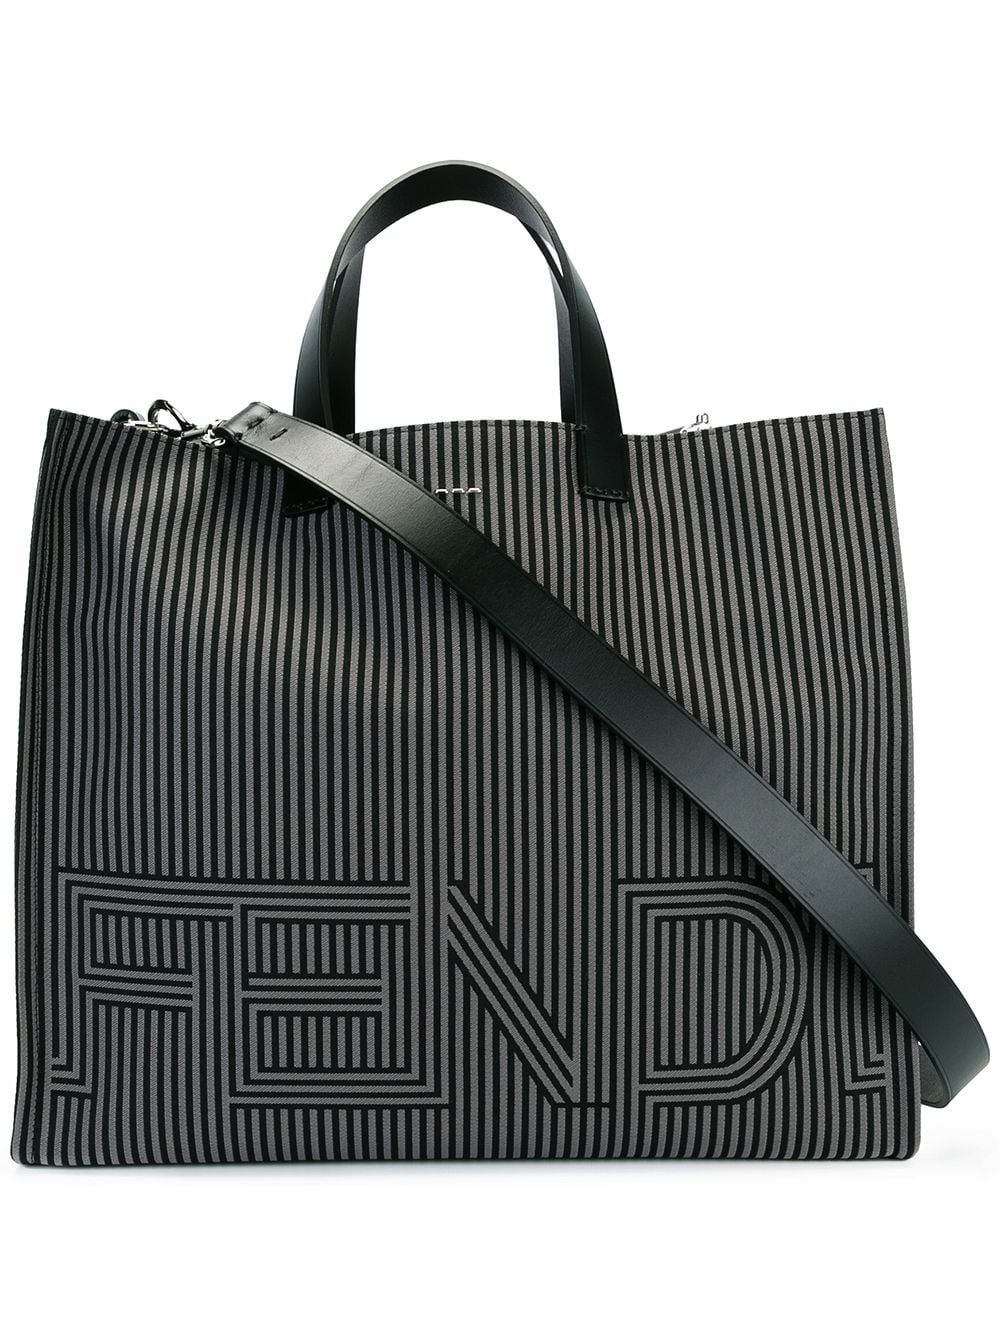 809cc478d4a1 ... discount fendi fendi two tone striped tote bag black. fendi bags a40f6  fdf04